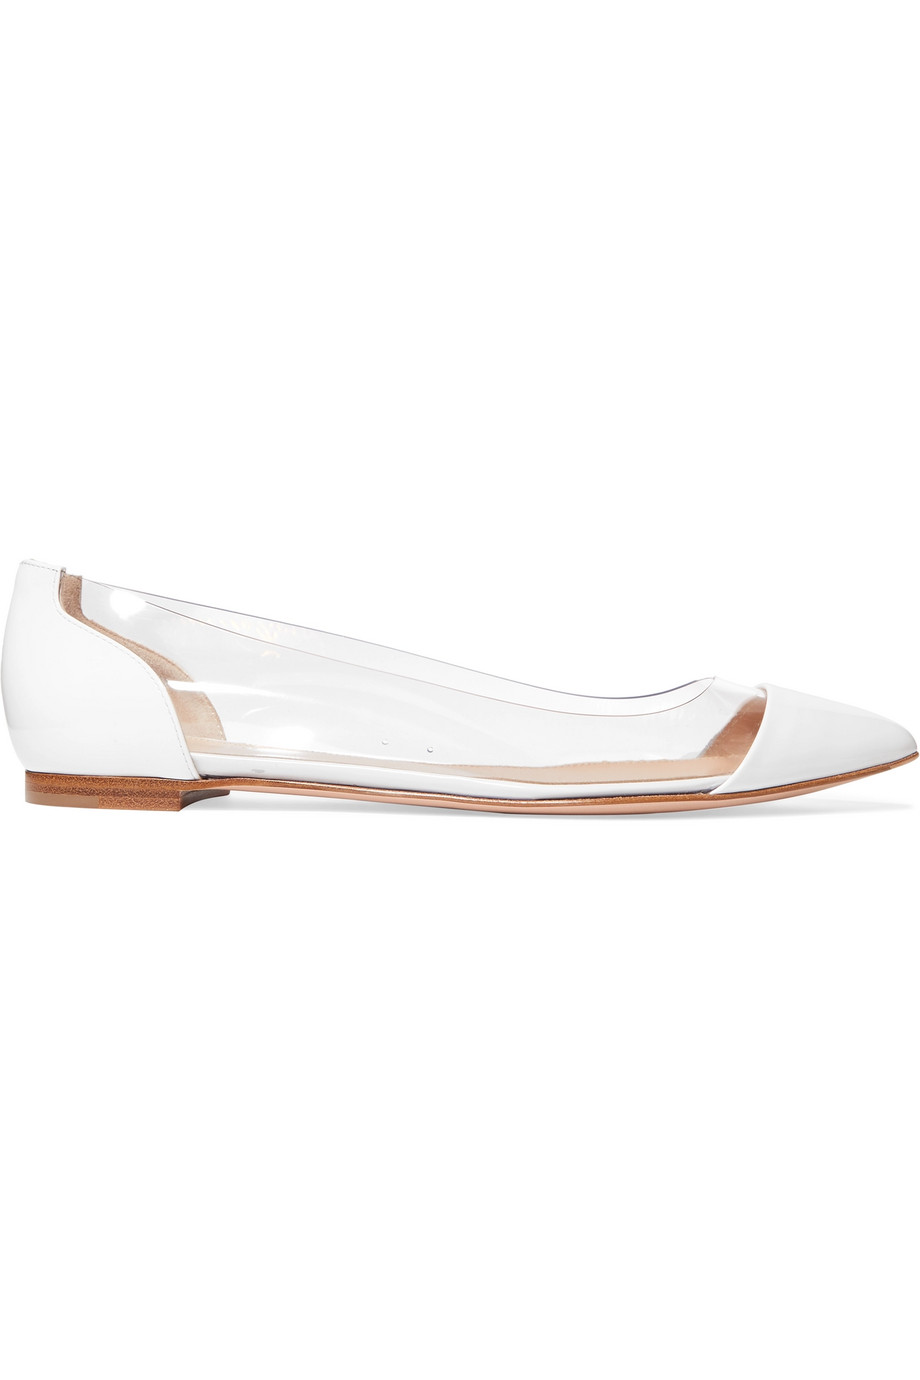 Gianvito Rossi Plexi Patent-Leather and PVC Point-Toe Flats